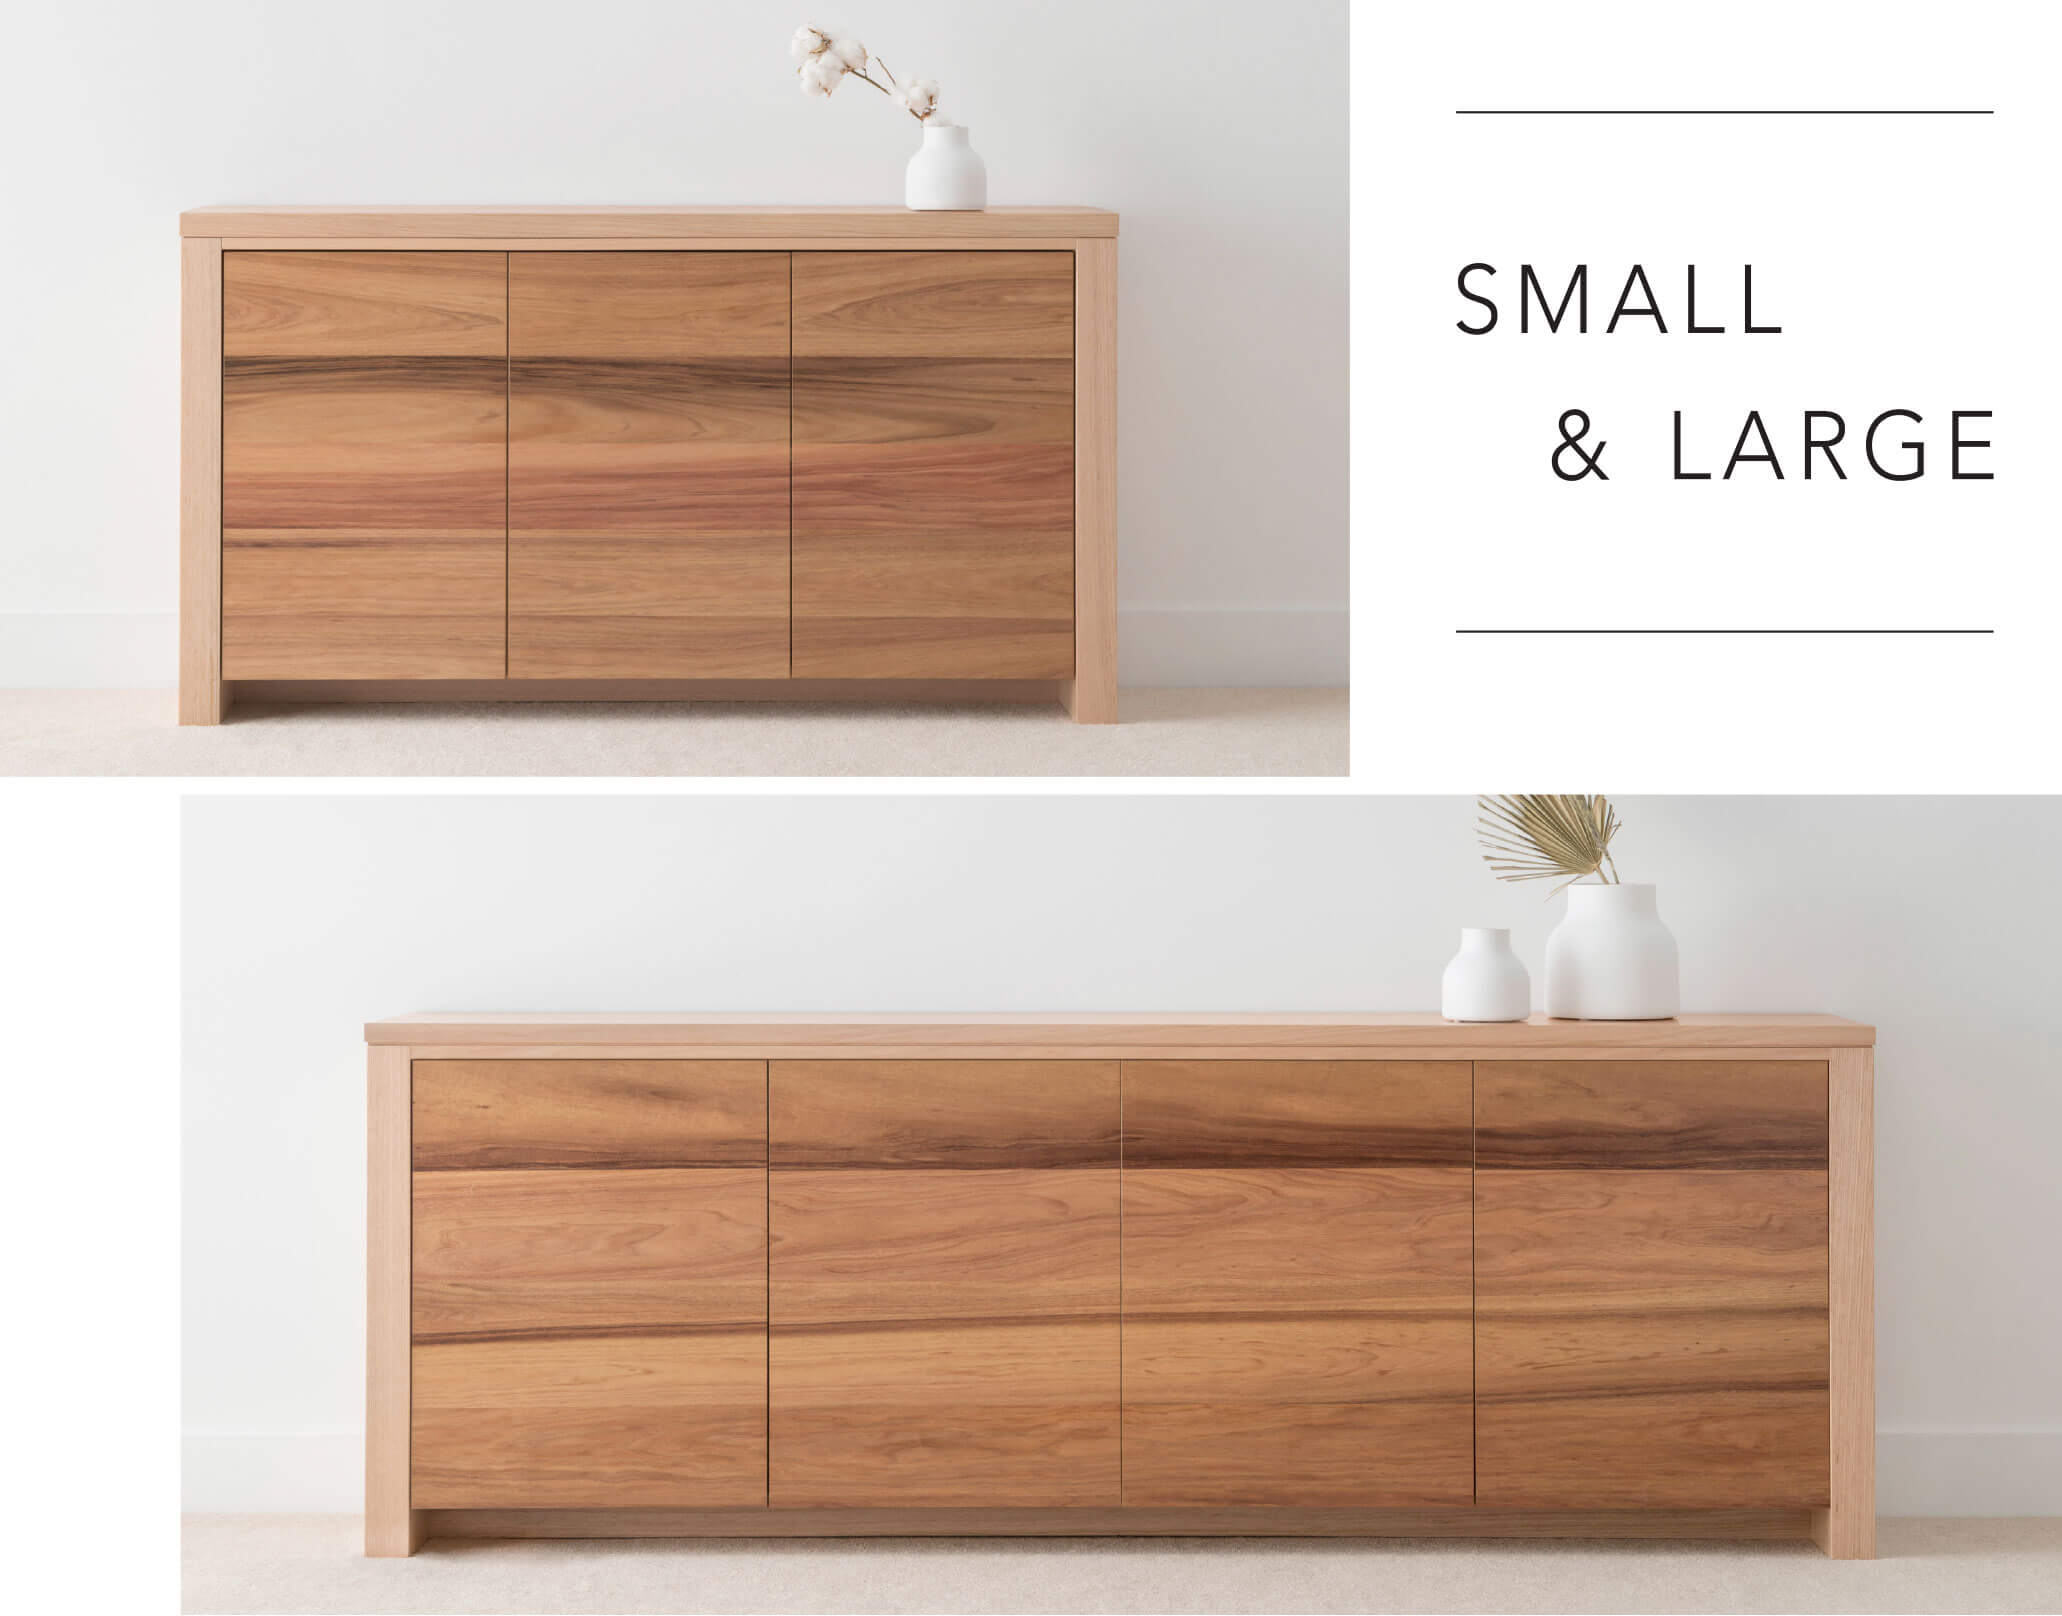 small timber buffet and large timber buffet crafted from hardwood timber